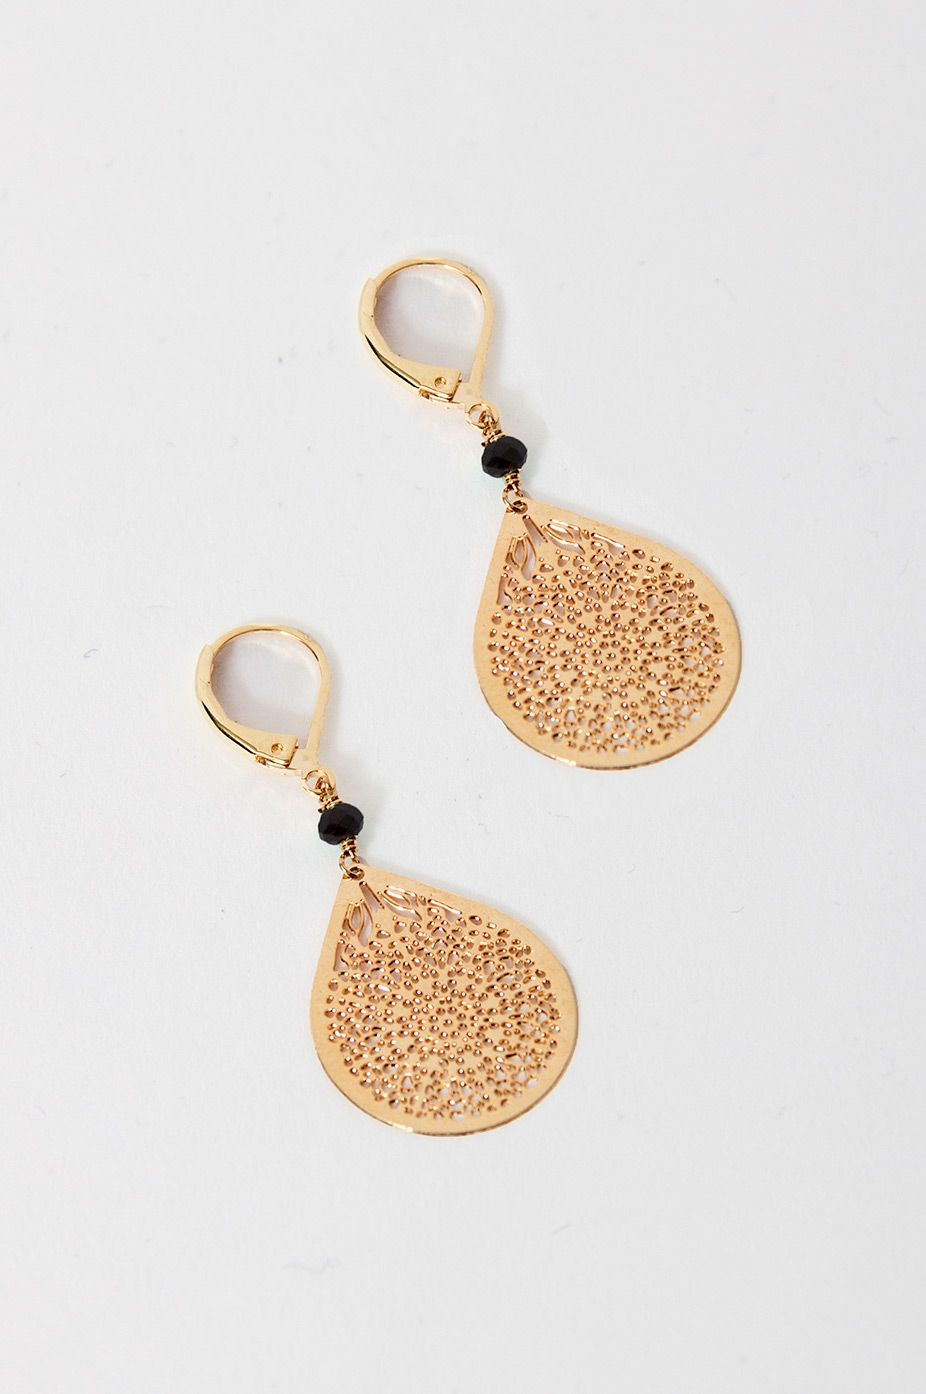 Fine Gold Earrings Featuring A Lace Design And Black Pearl Embellishment From Sienna With Love